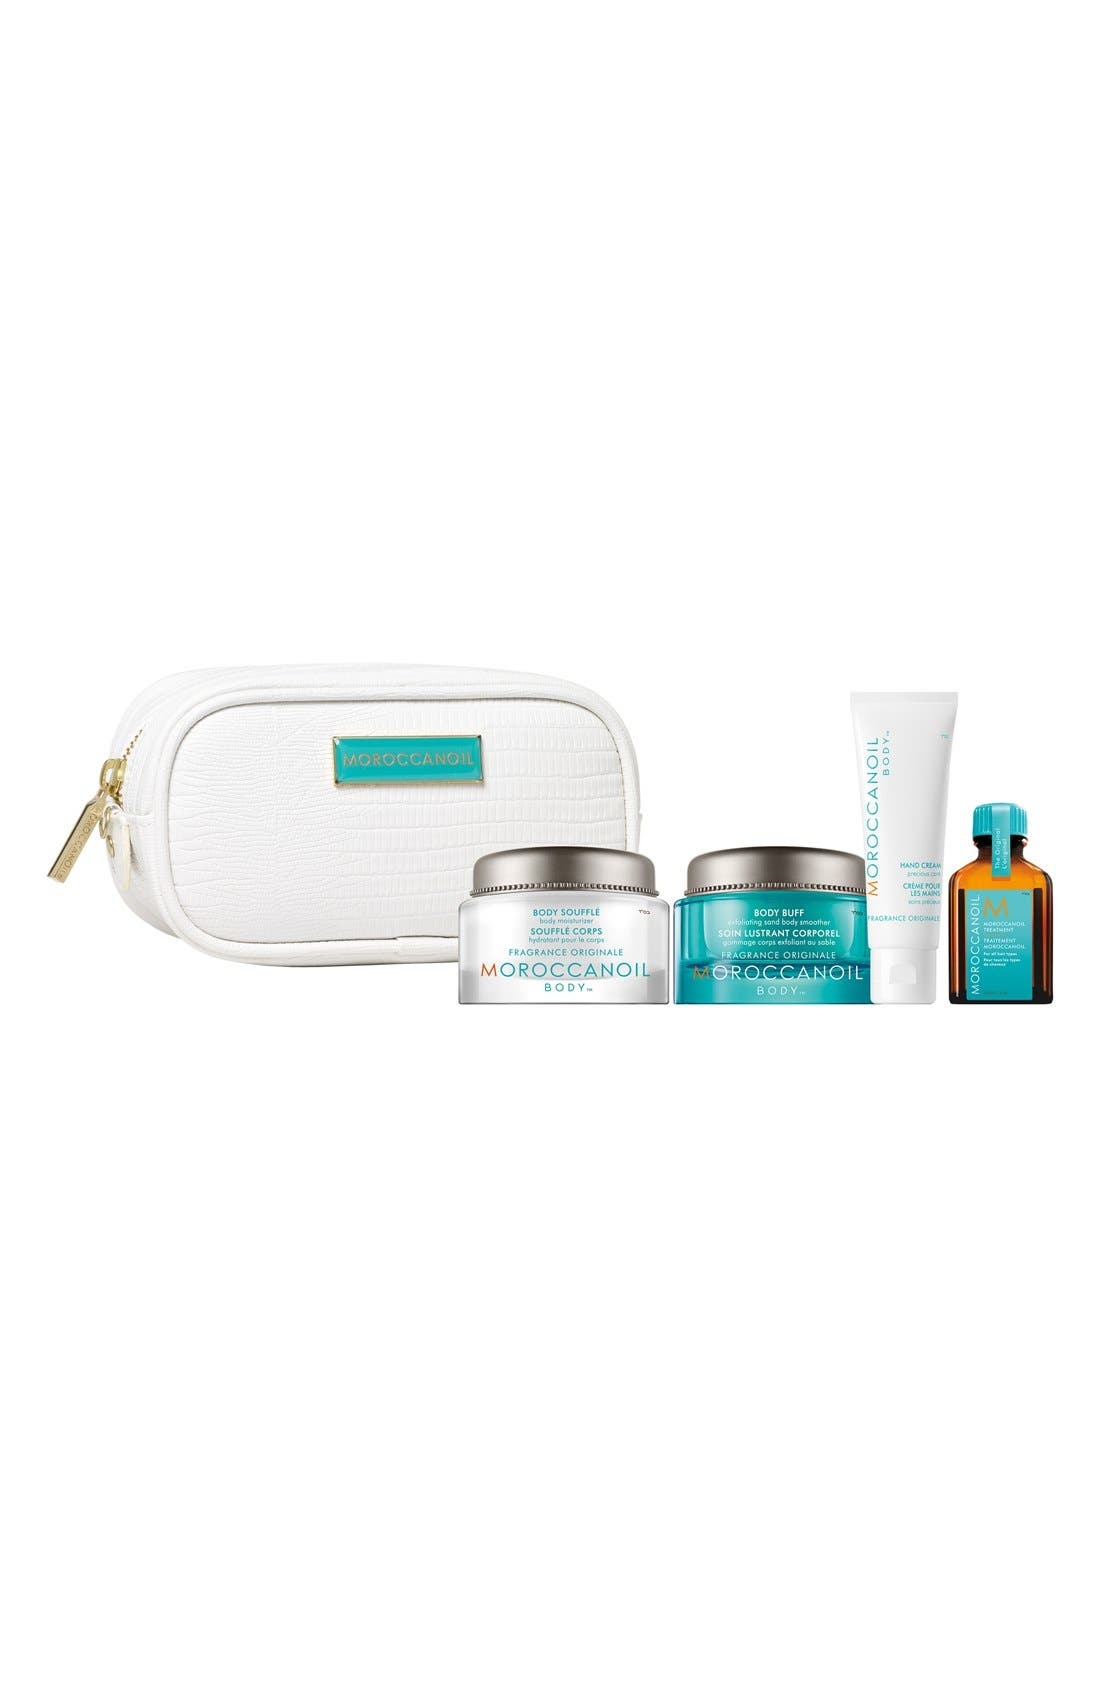 MOROCCANOIL® 'Little Luxury - Fragrance Originale' Set